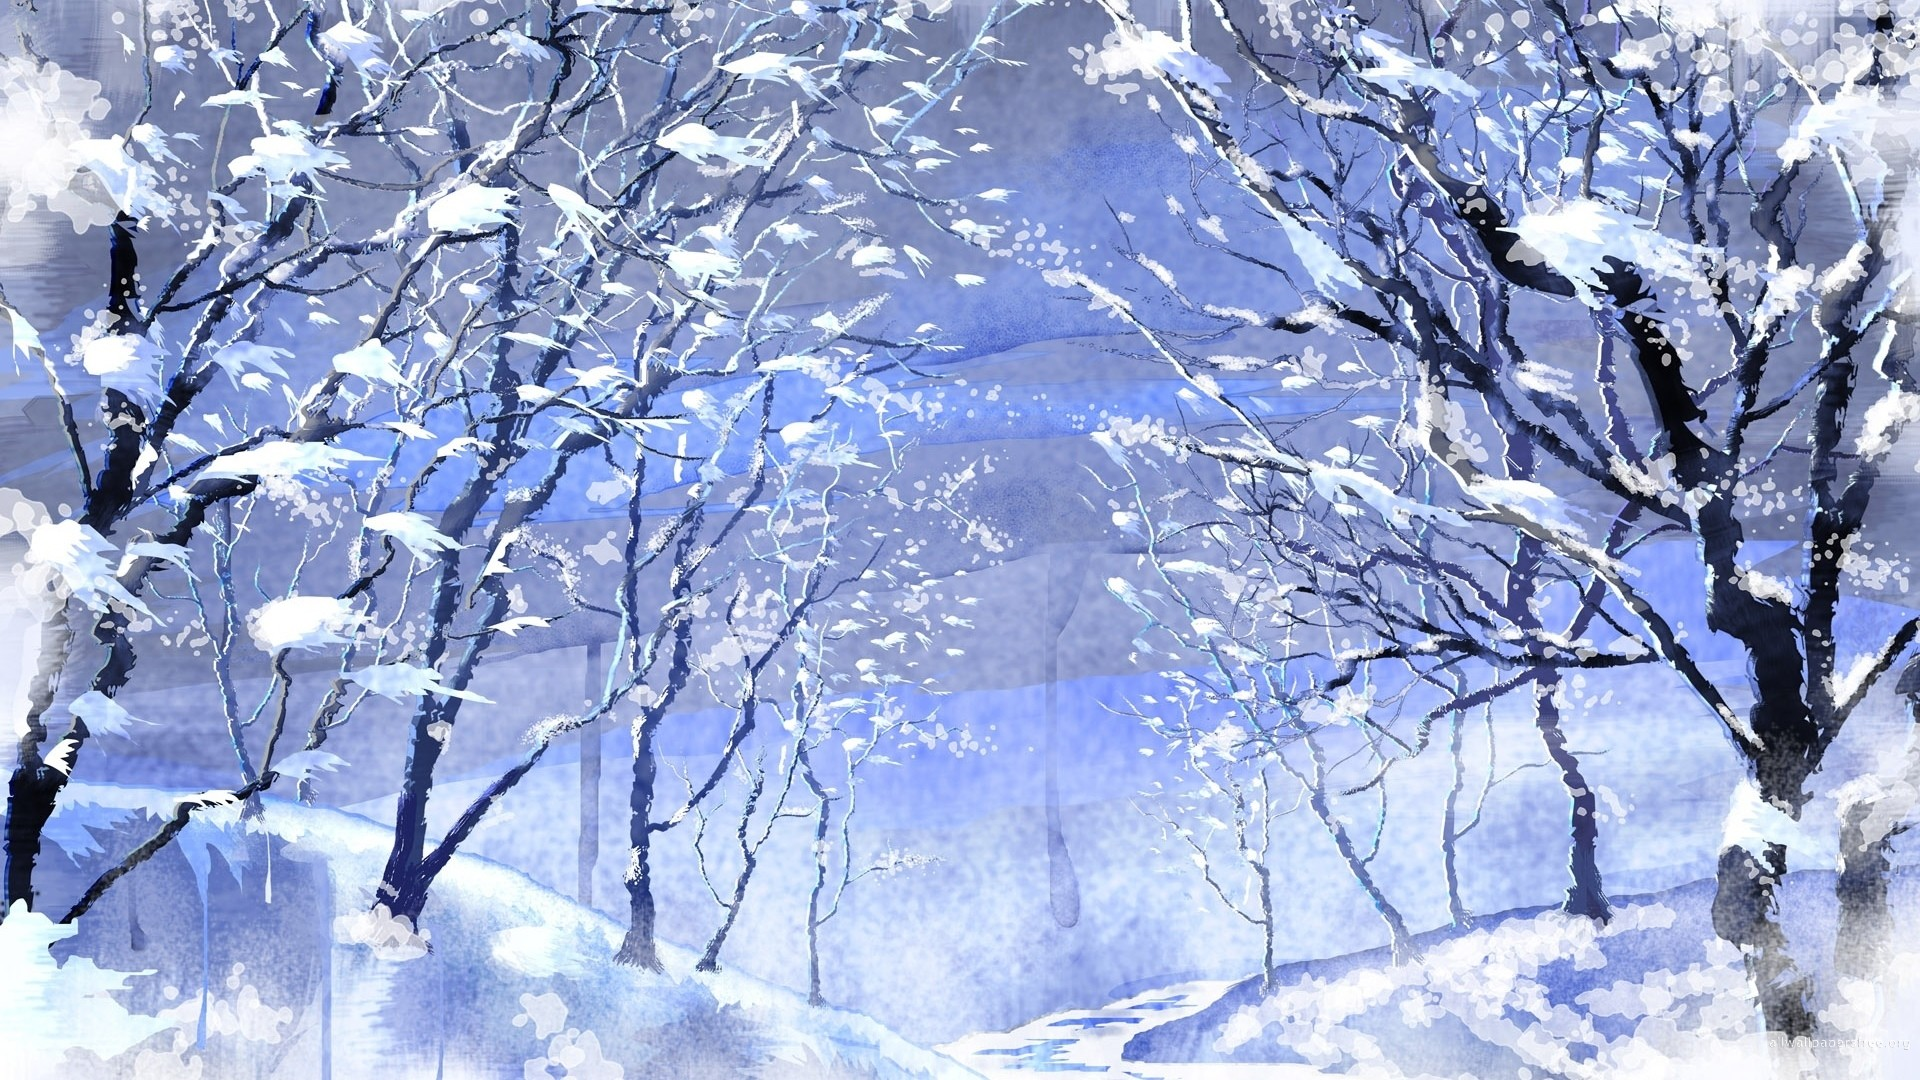 Christmas Winter Backgrounds 52 images 1920x1080